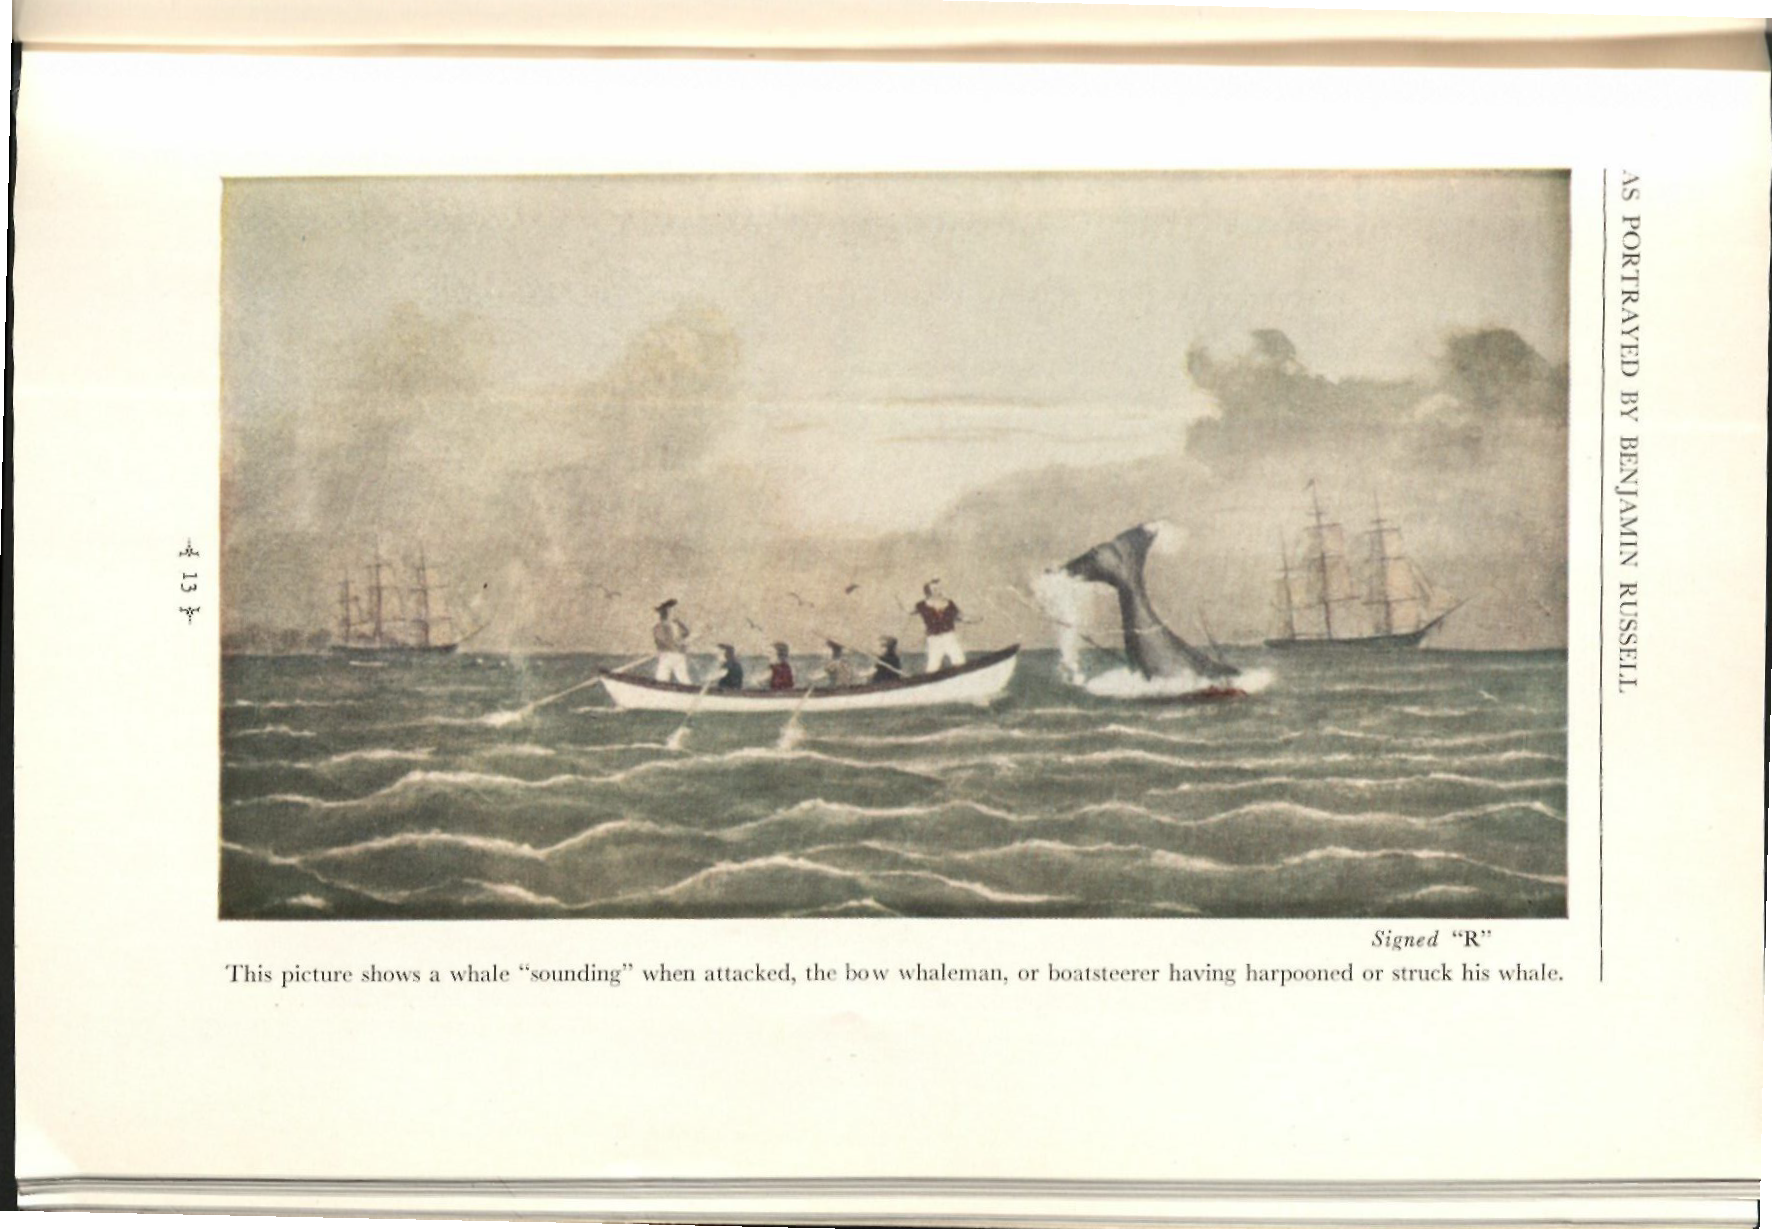 Illustration in book of men rowing on a small boat as a whale attacks them